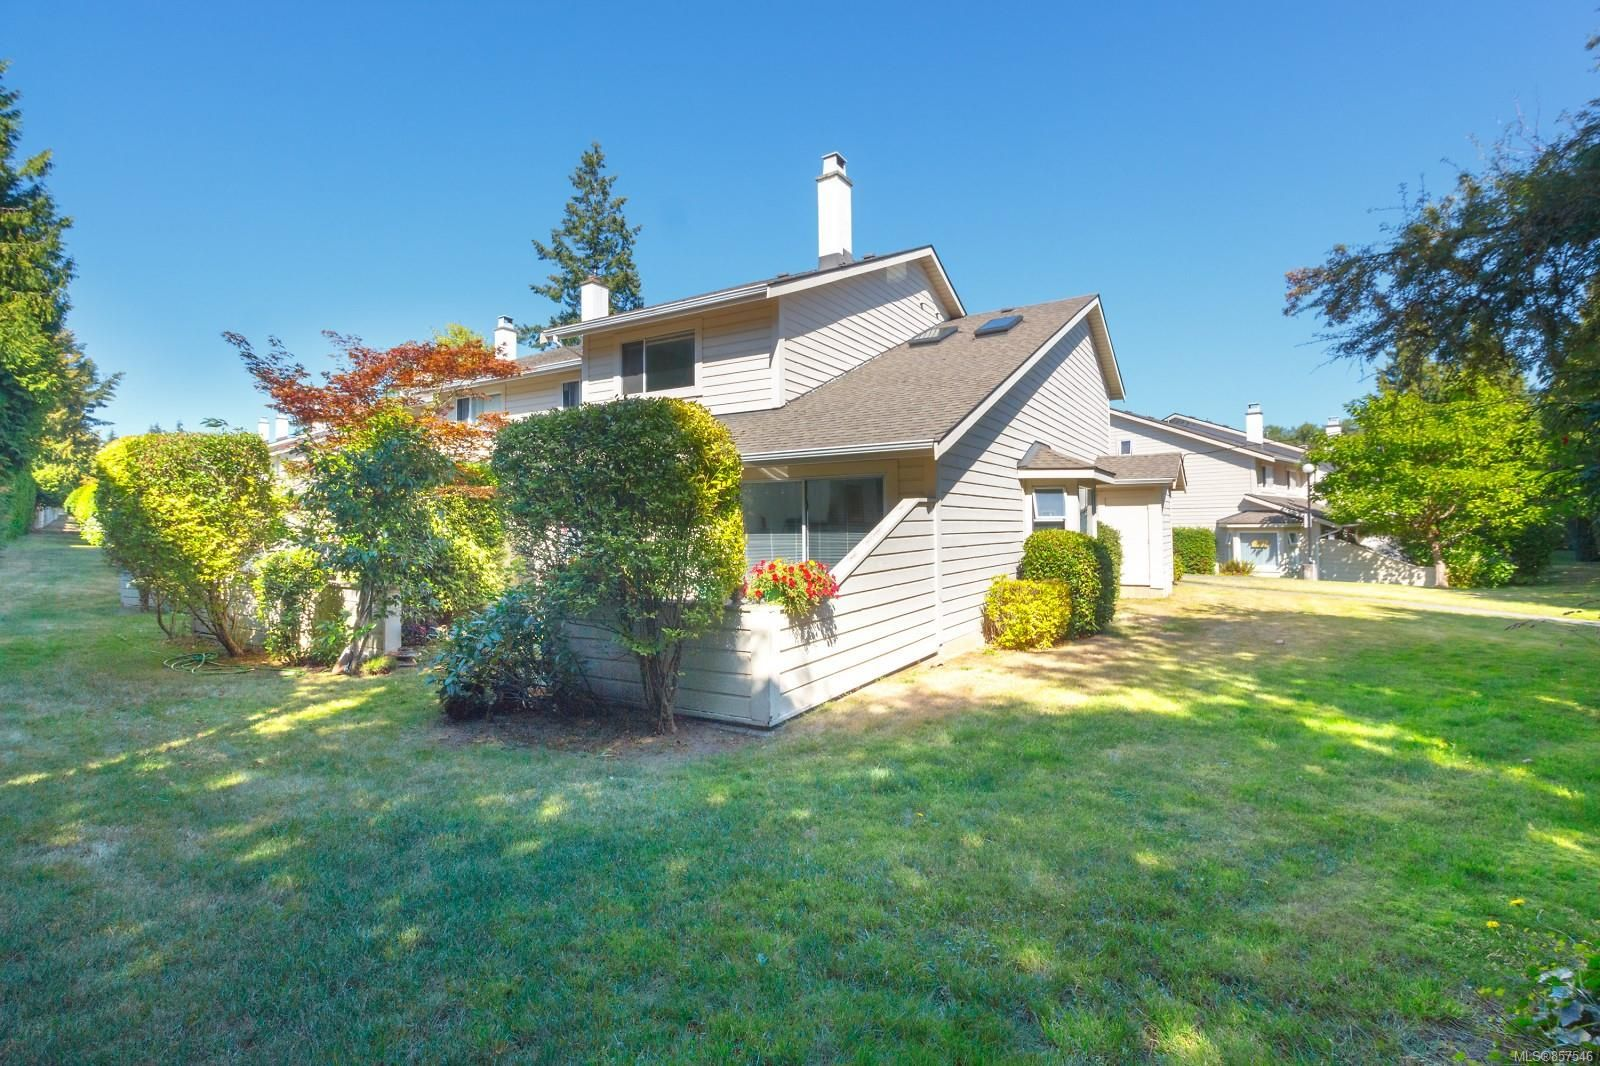 Main Photo: 39 1287 Verdier Ave in : CS Brentwood Bay Row/Townhouse for sale (Central Saanich)  : MLS®# 857546